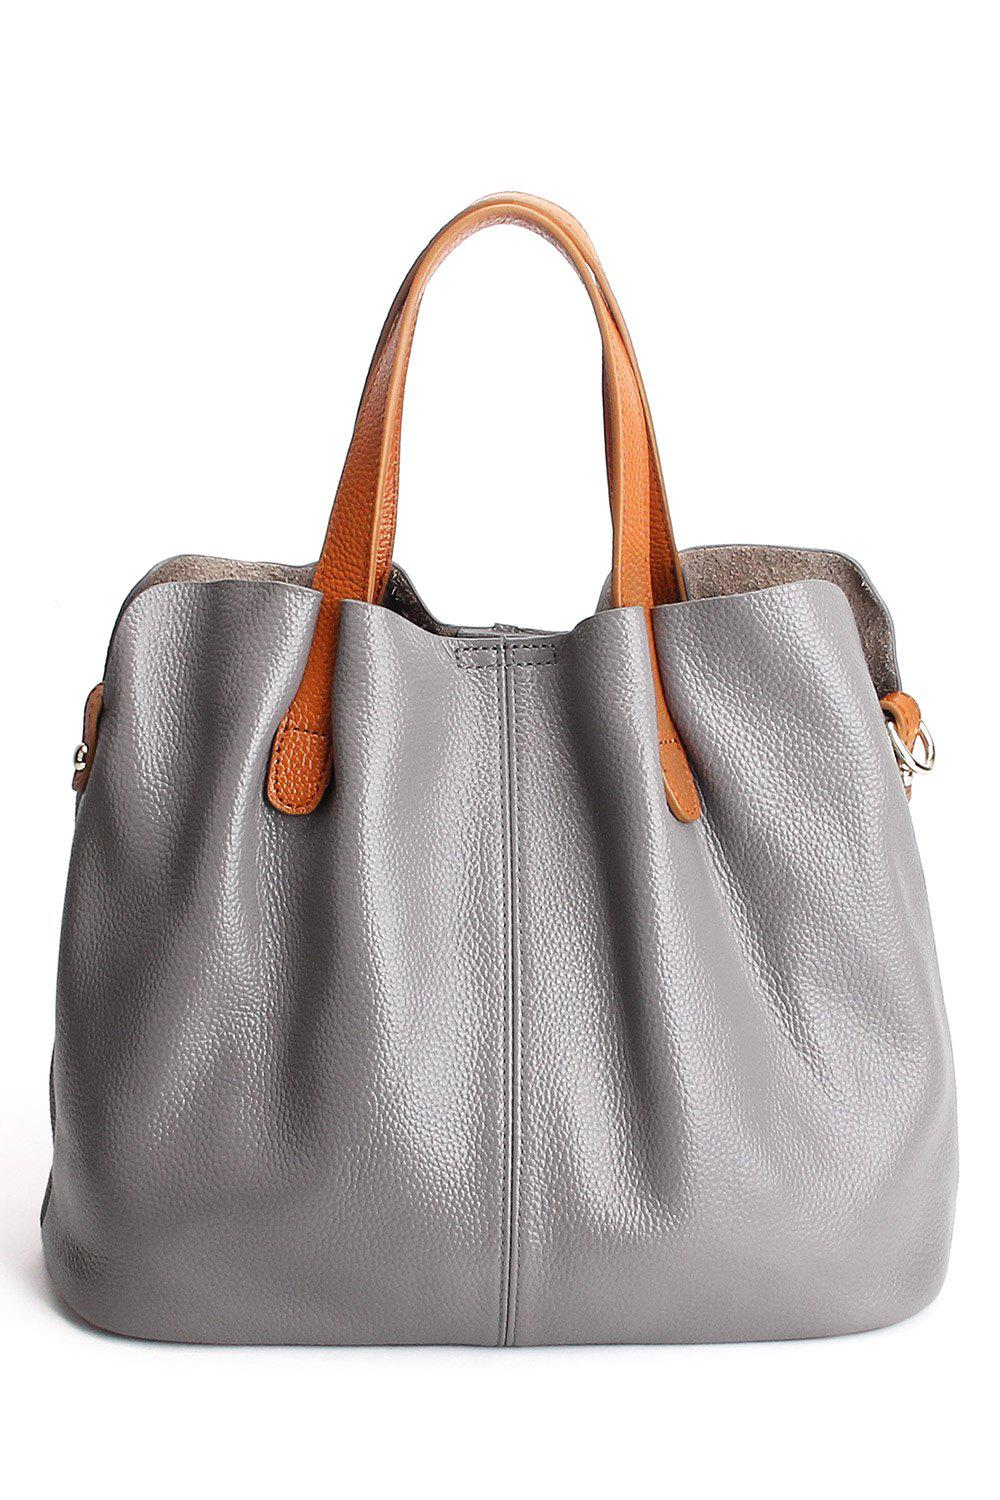 Hot Textured Leather Stitching Tote Bag